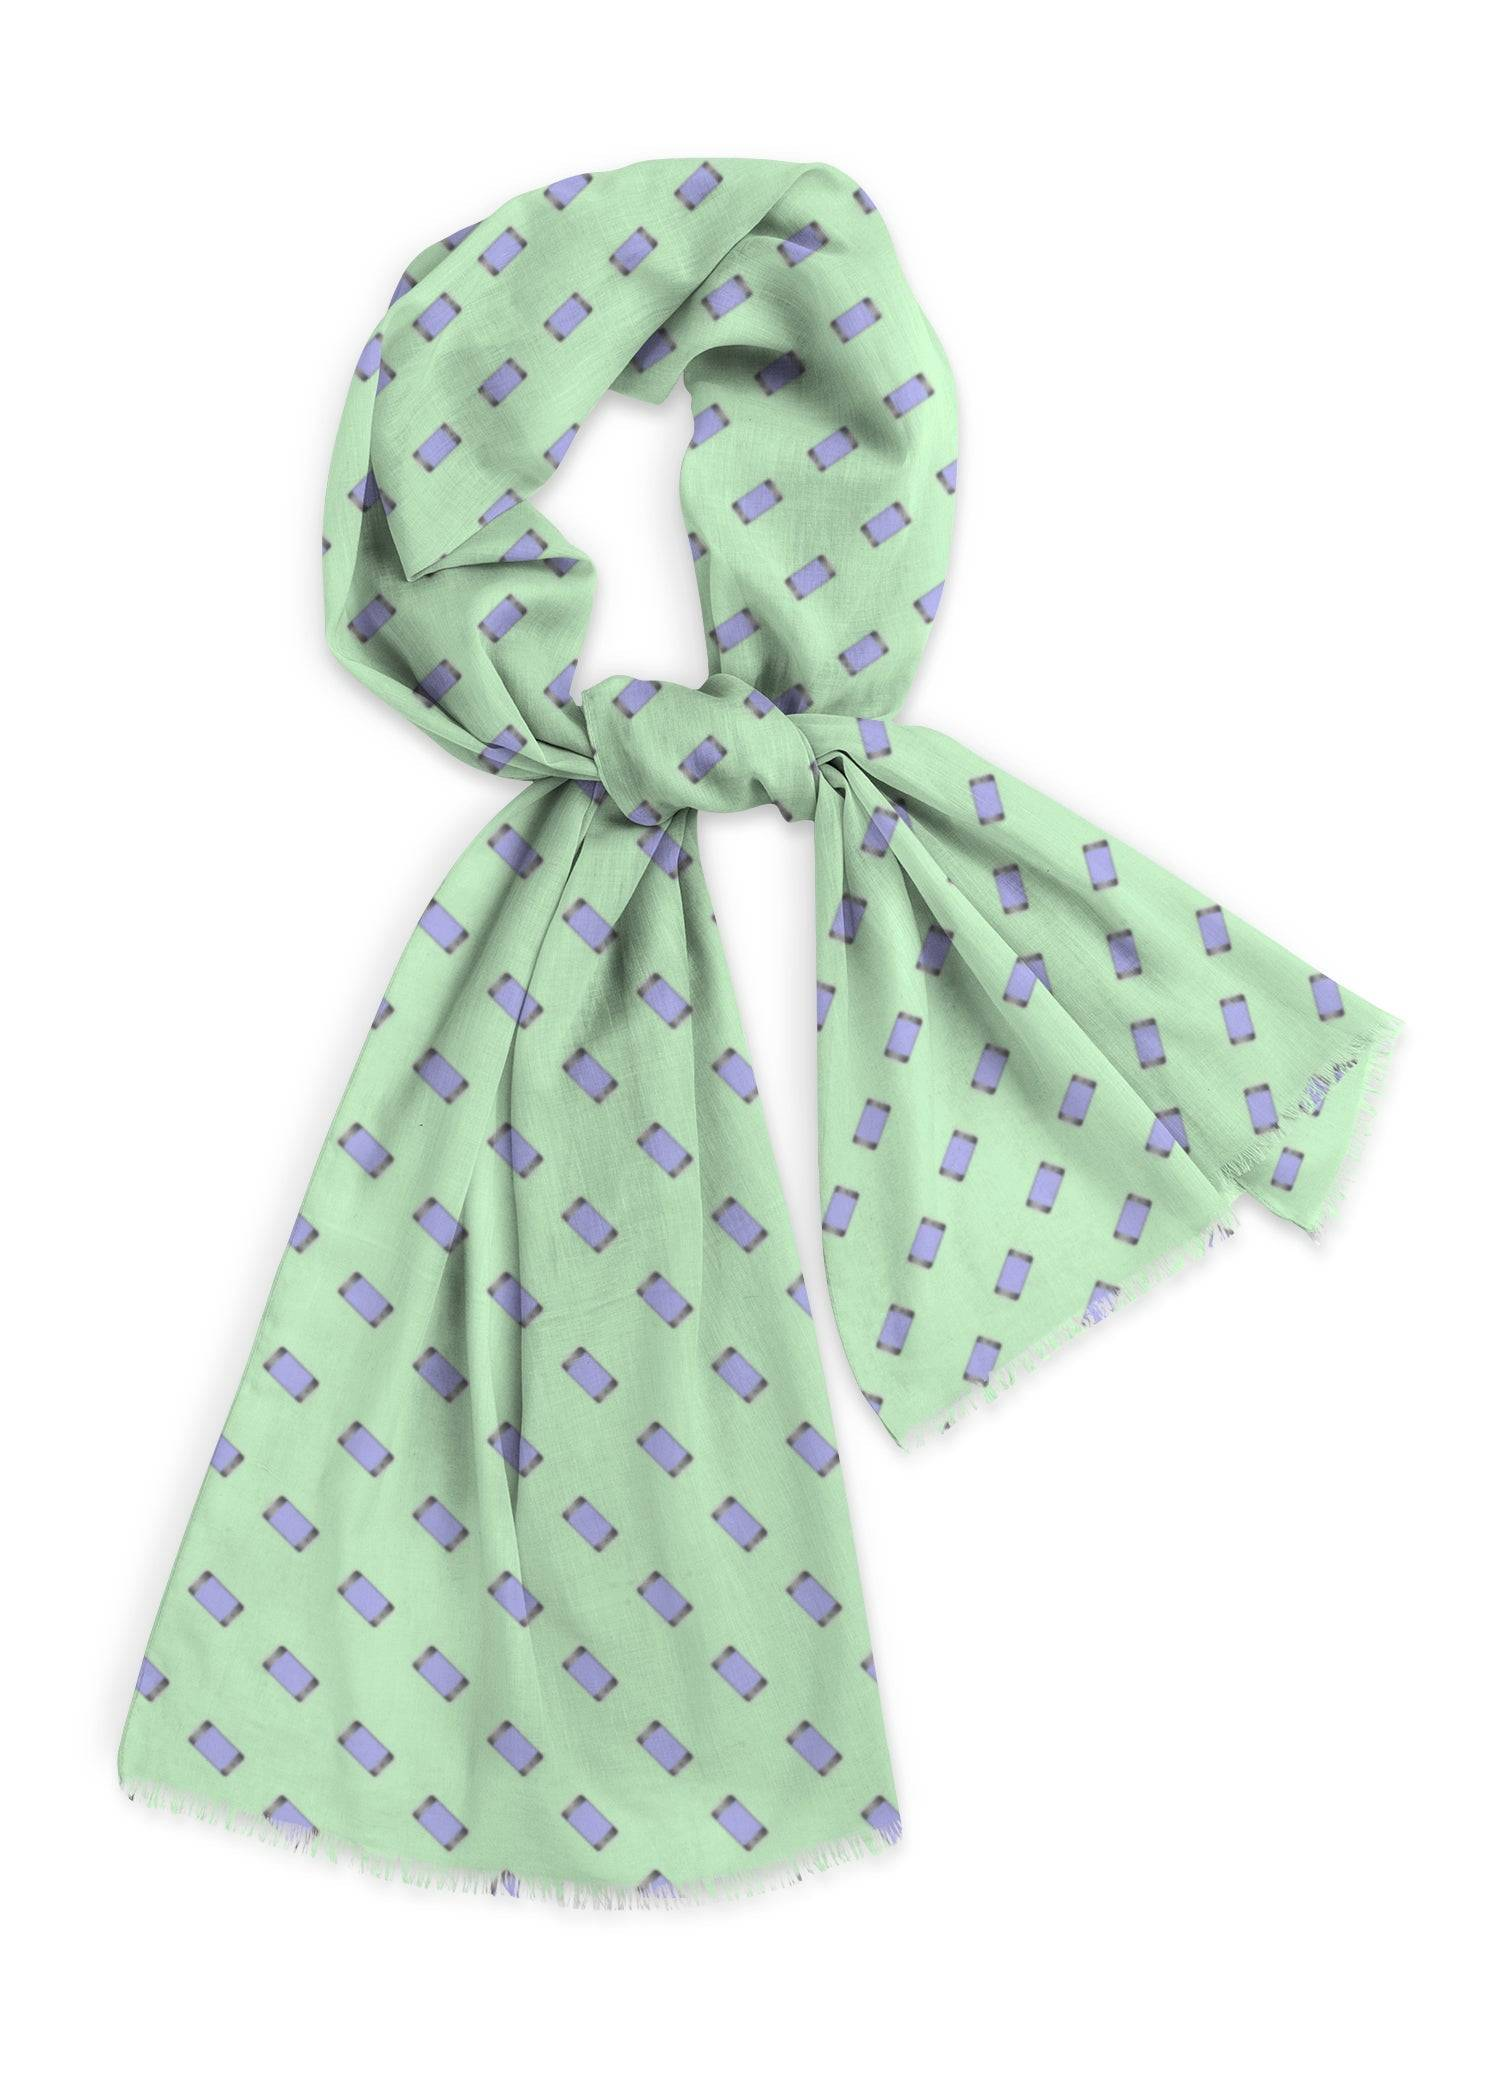 VIDA Natural Cotton Scarf - Mobile Phones On Green in Green by VIDA Original Artist  - Size: One Size